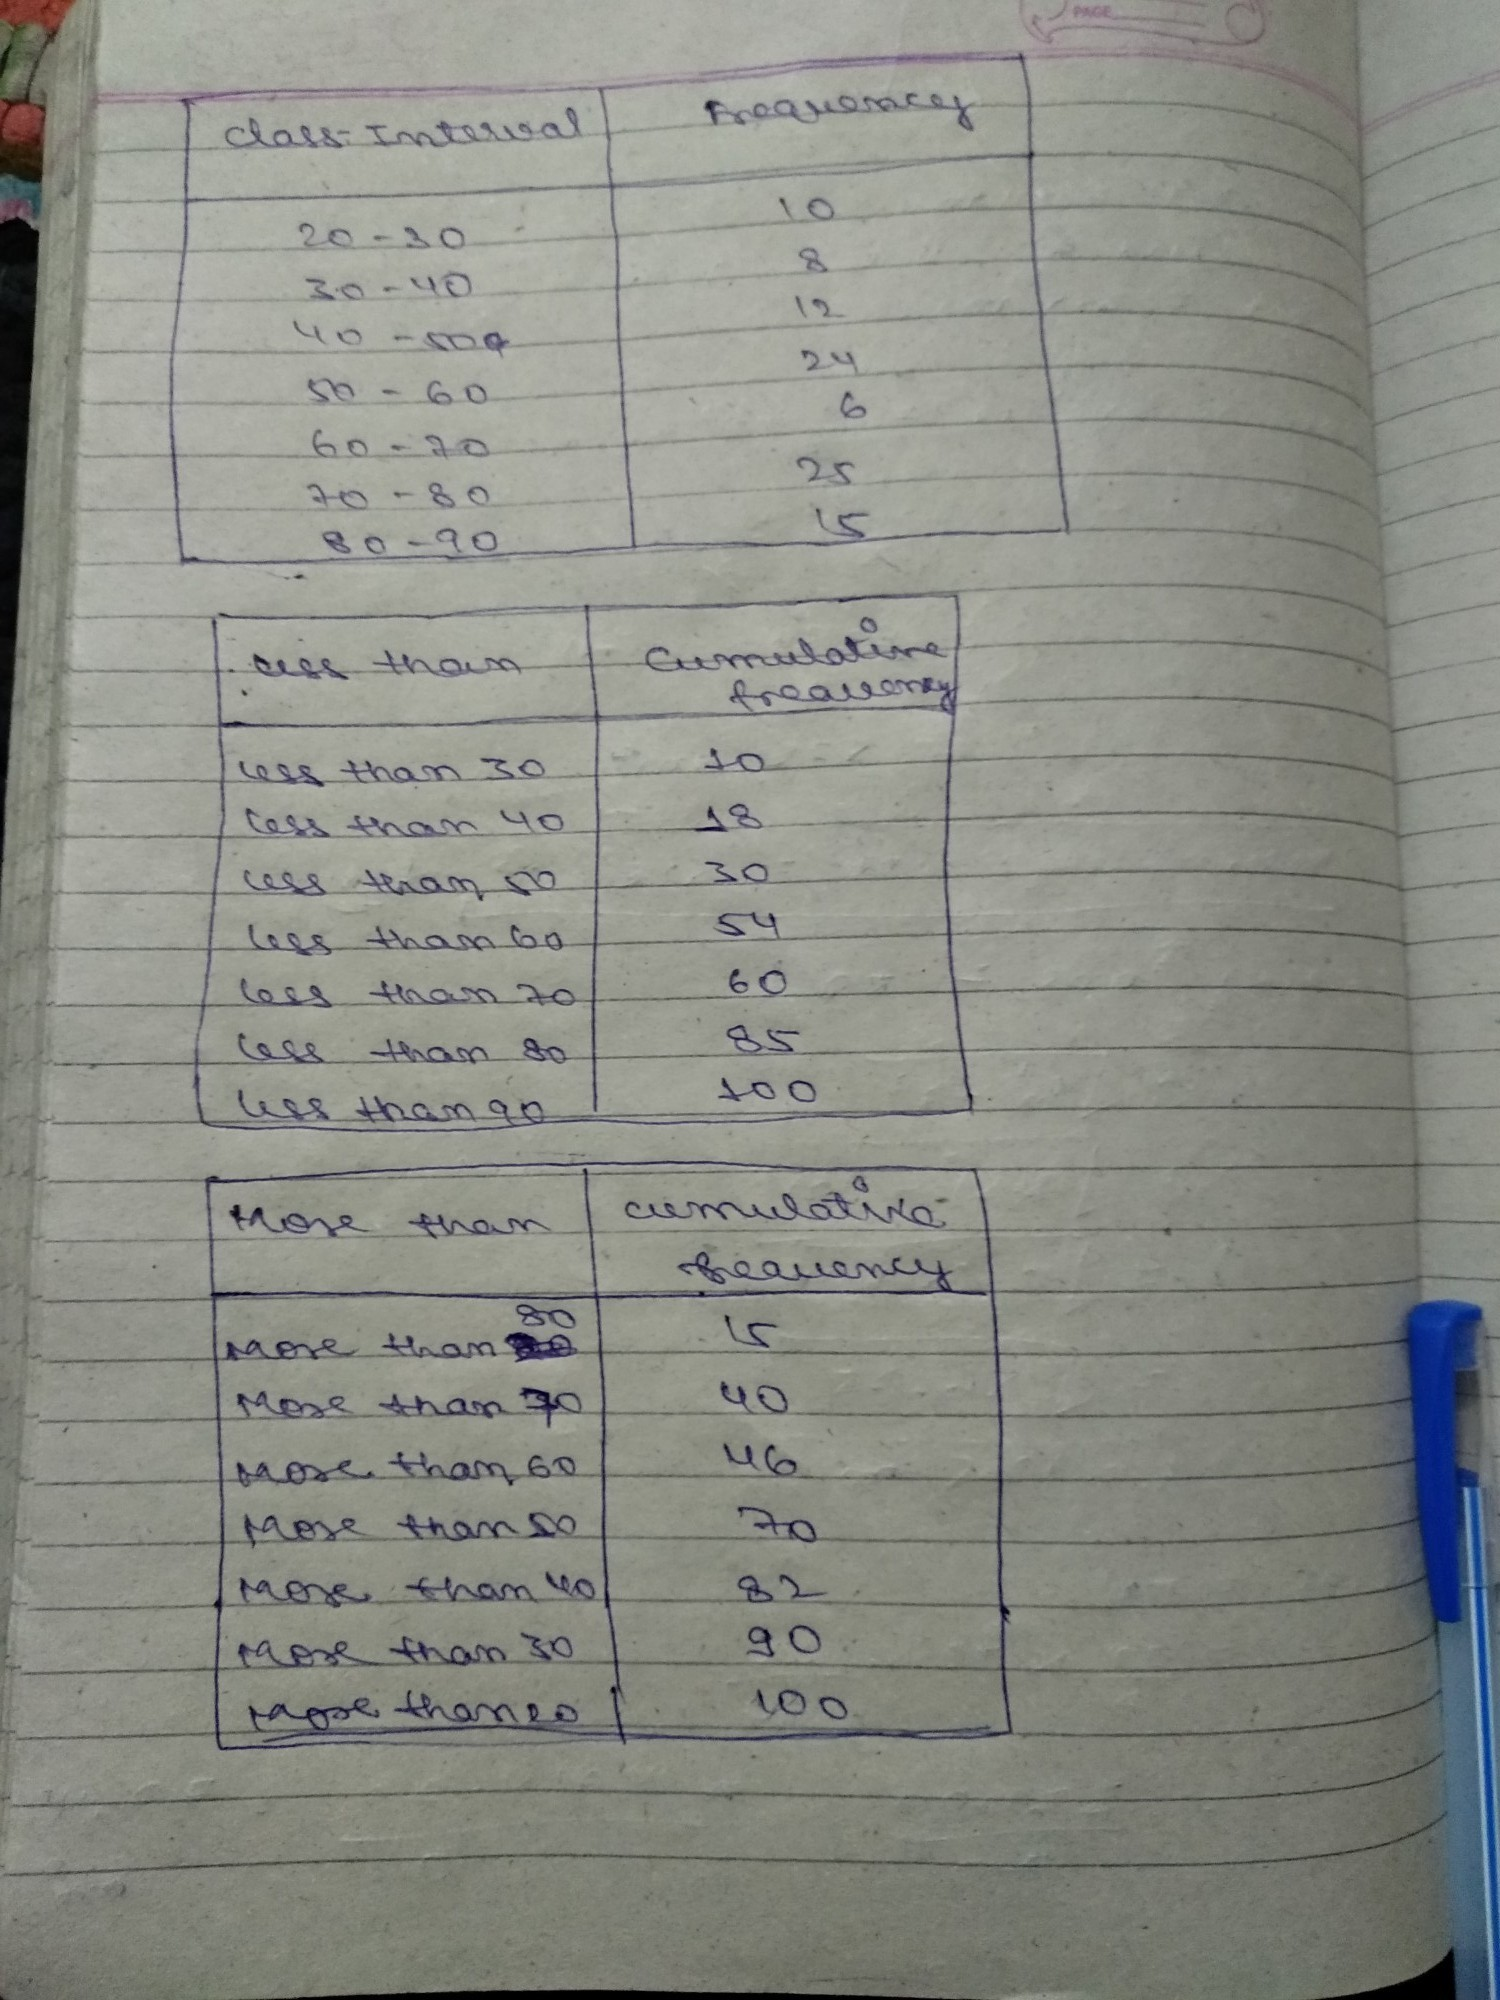 Draw Less Than Ogive And More Than Ogive For The Following